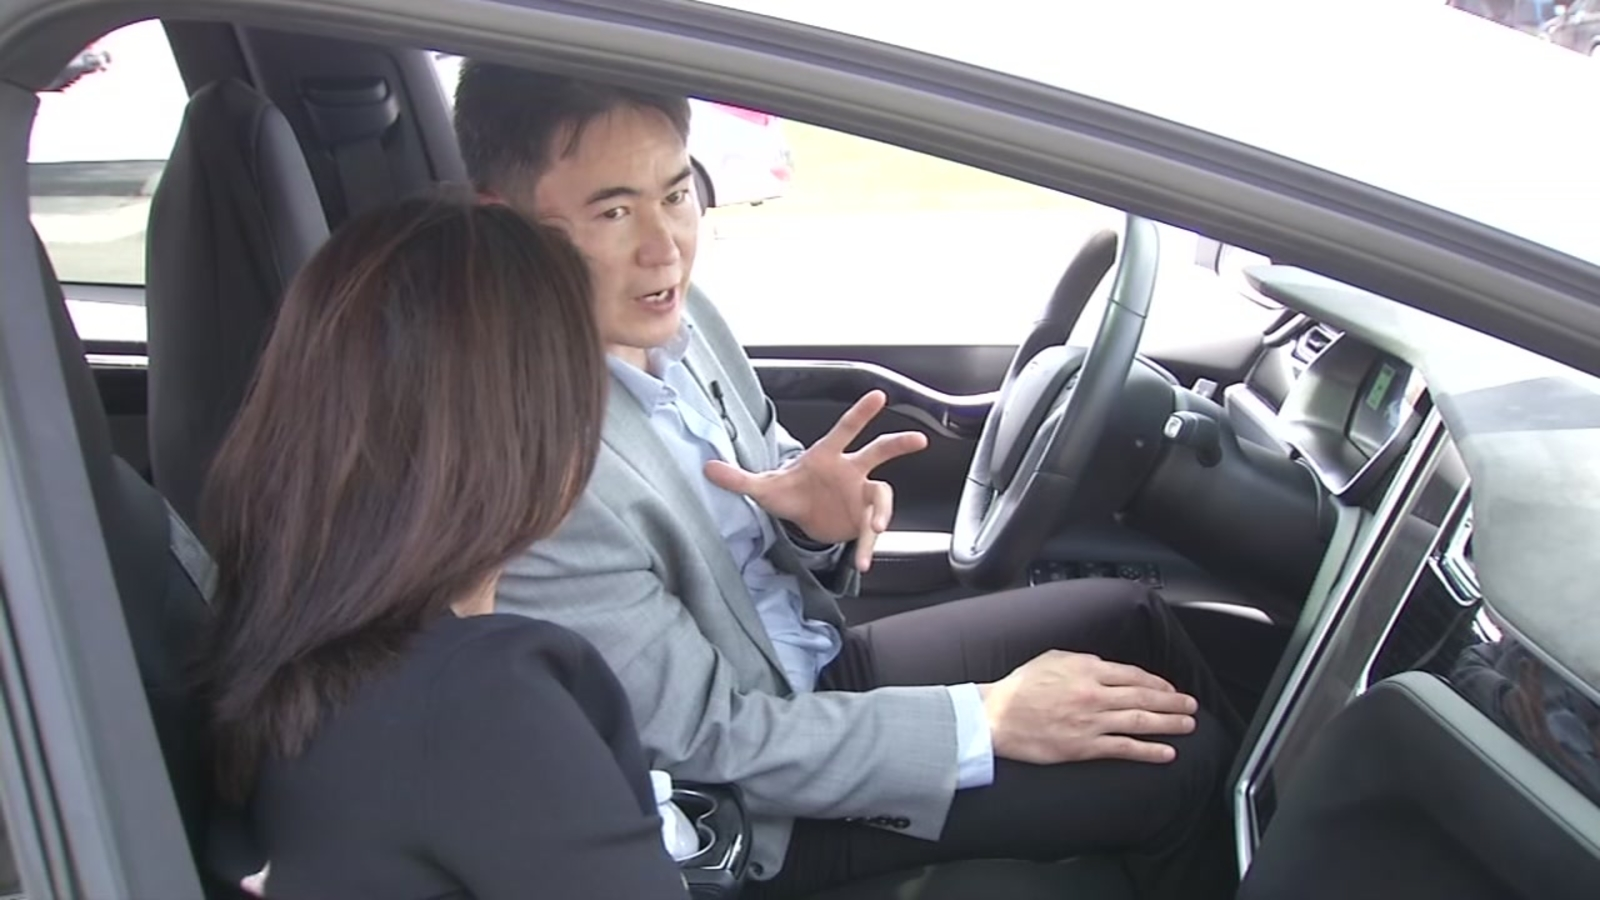 Owner describes features on Tesla involved in deadly SF crash